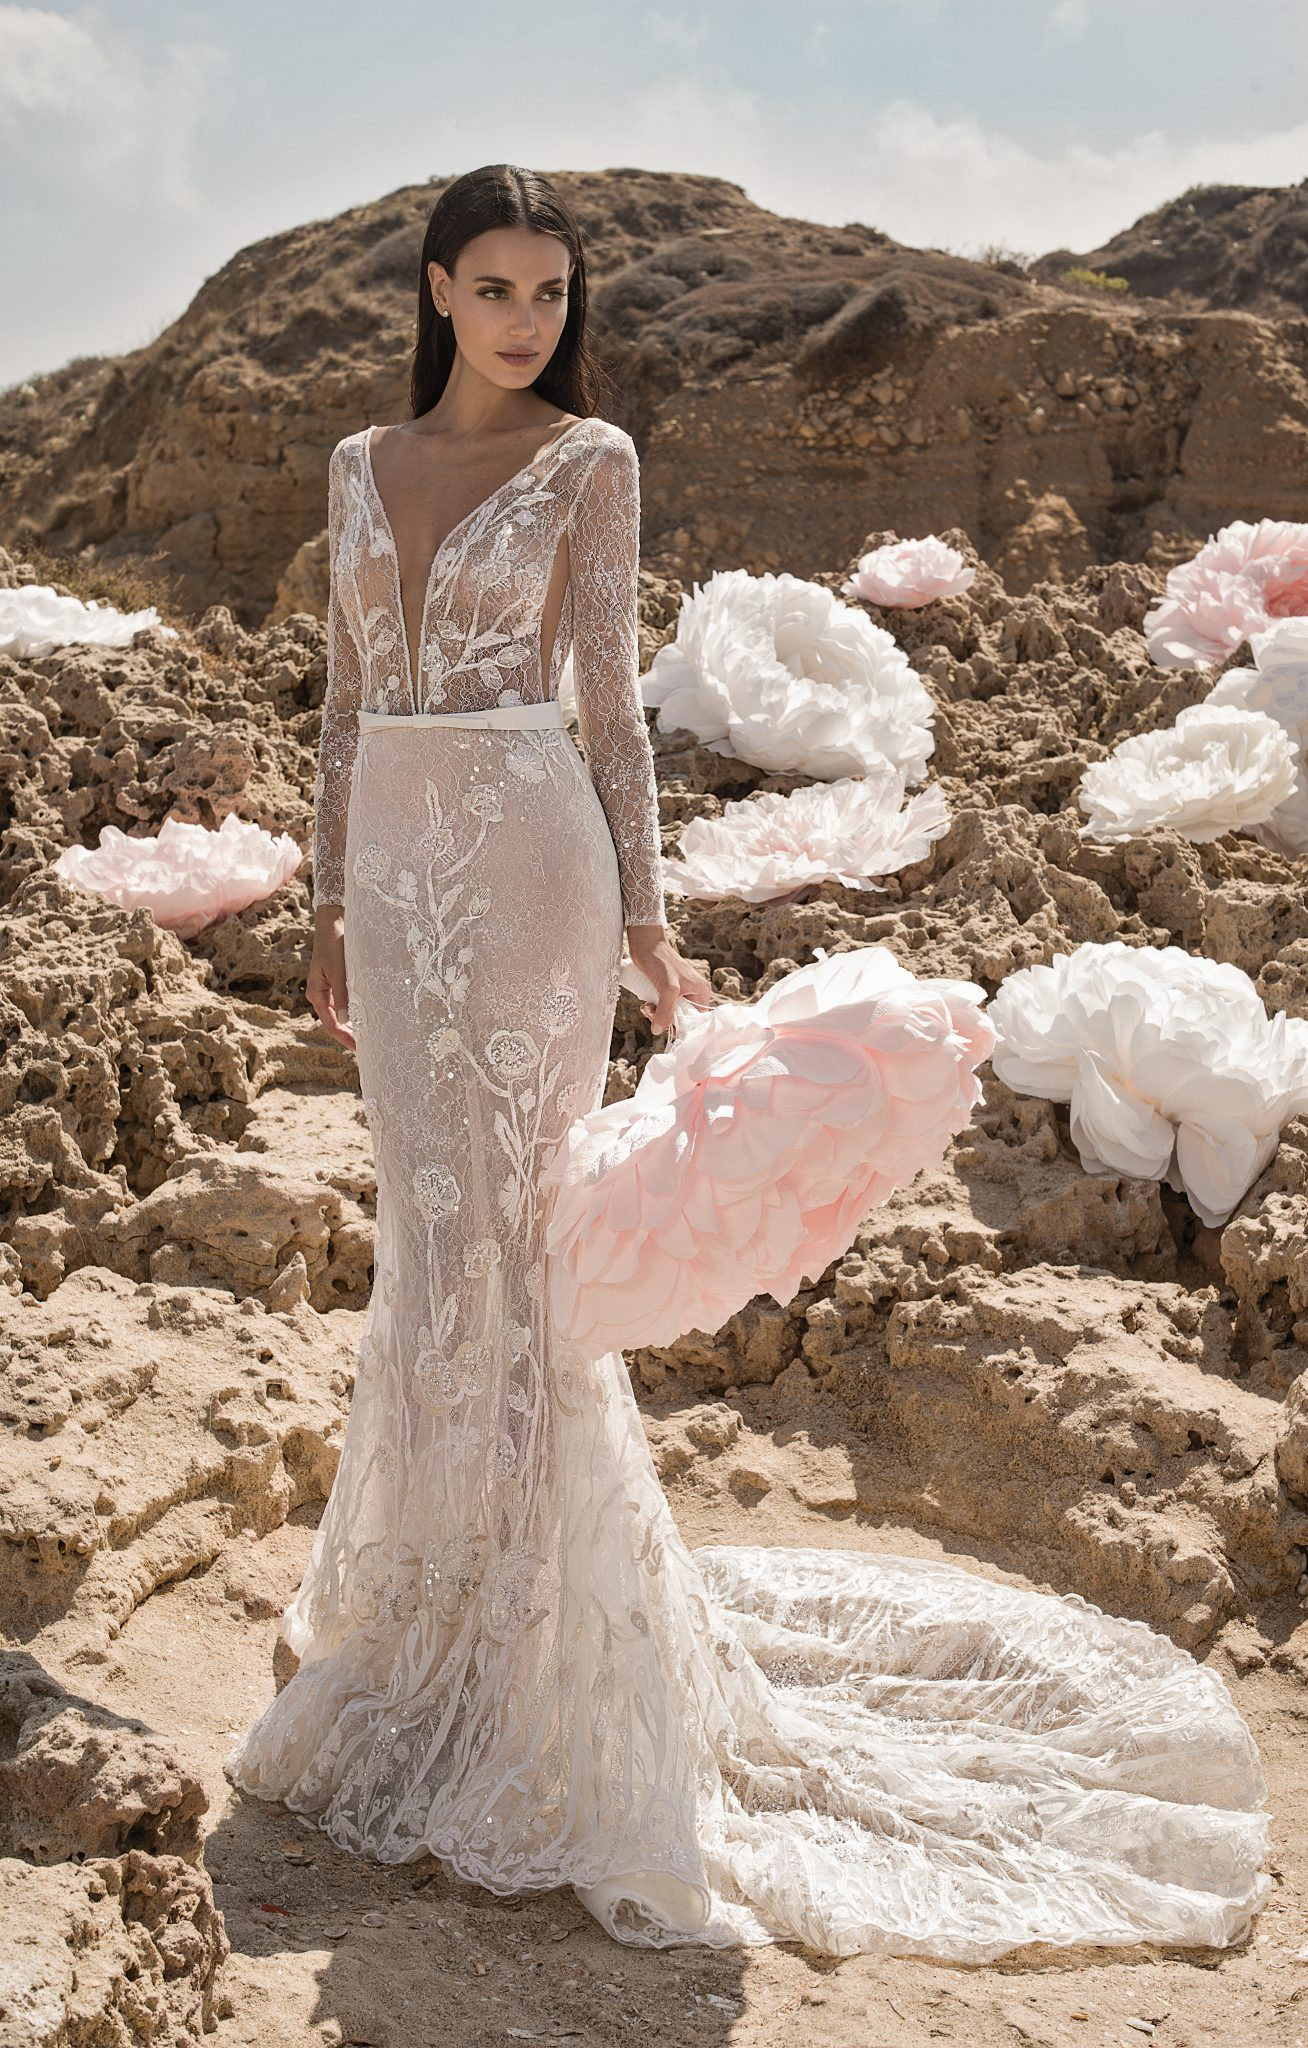 PEONY Embellished long sleeve deep V-neck mermaid gown with beaded floral appliqués and French lace underlay